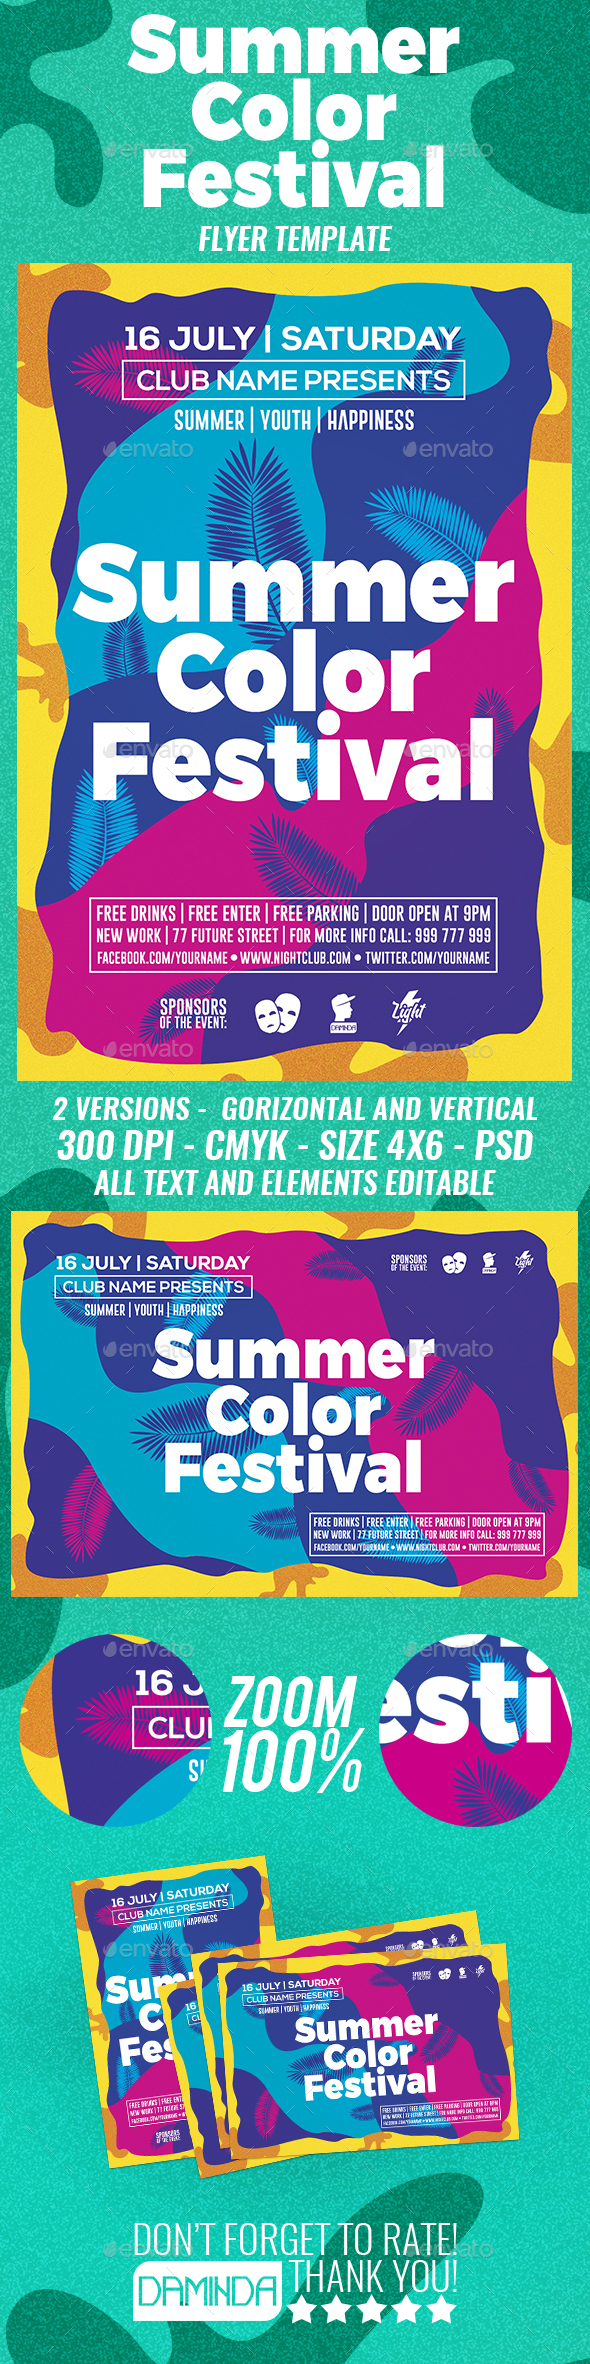 Summer Color Fest 2 Template - Clubs & Parties Events